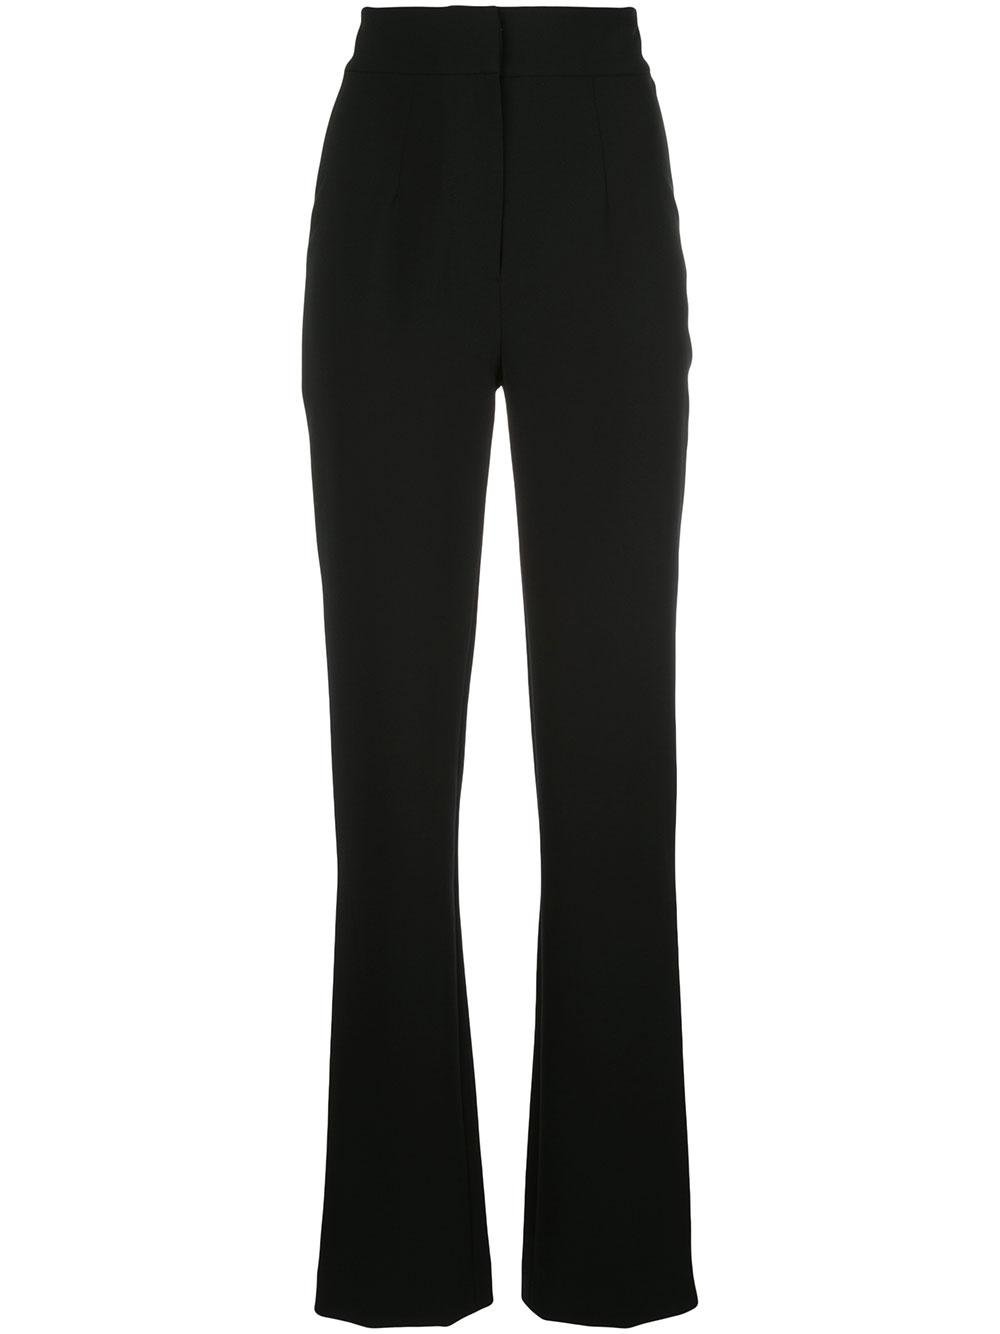 Lofton Slim Solid Suit Pant